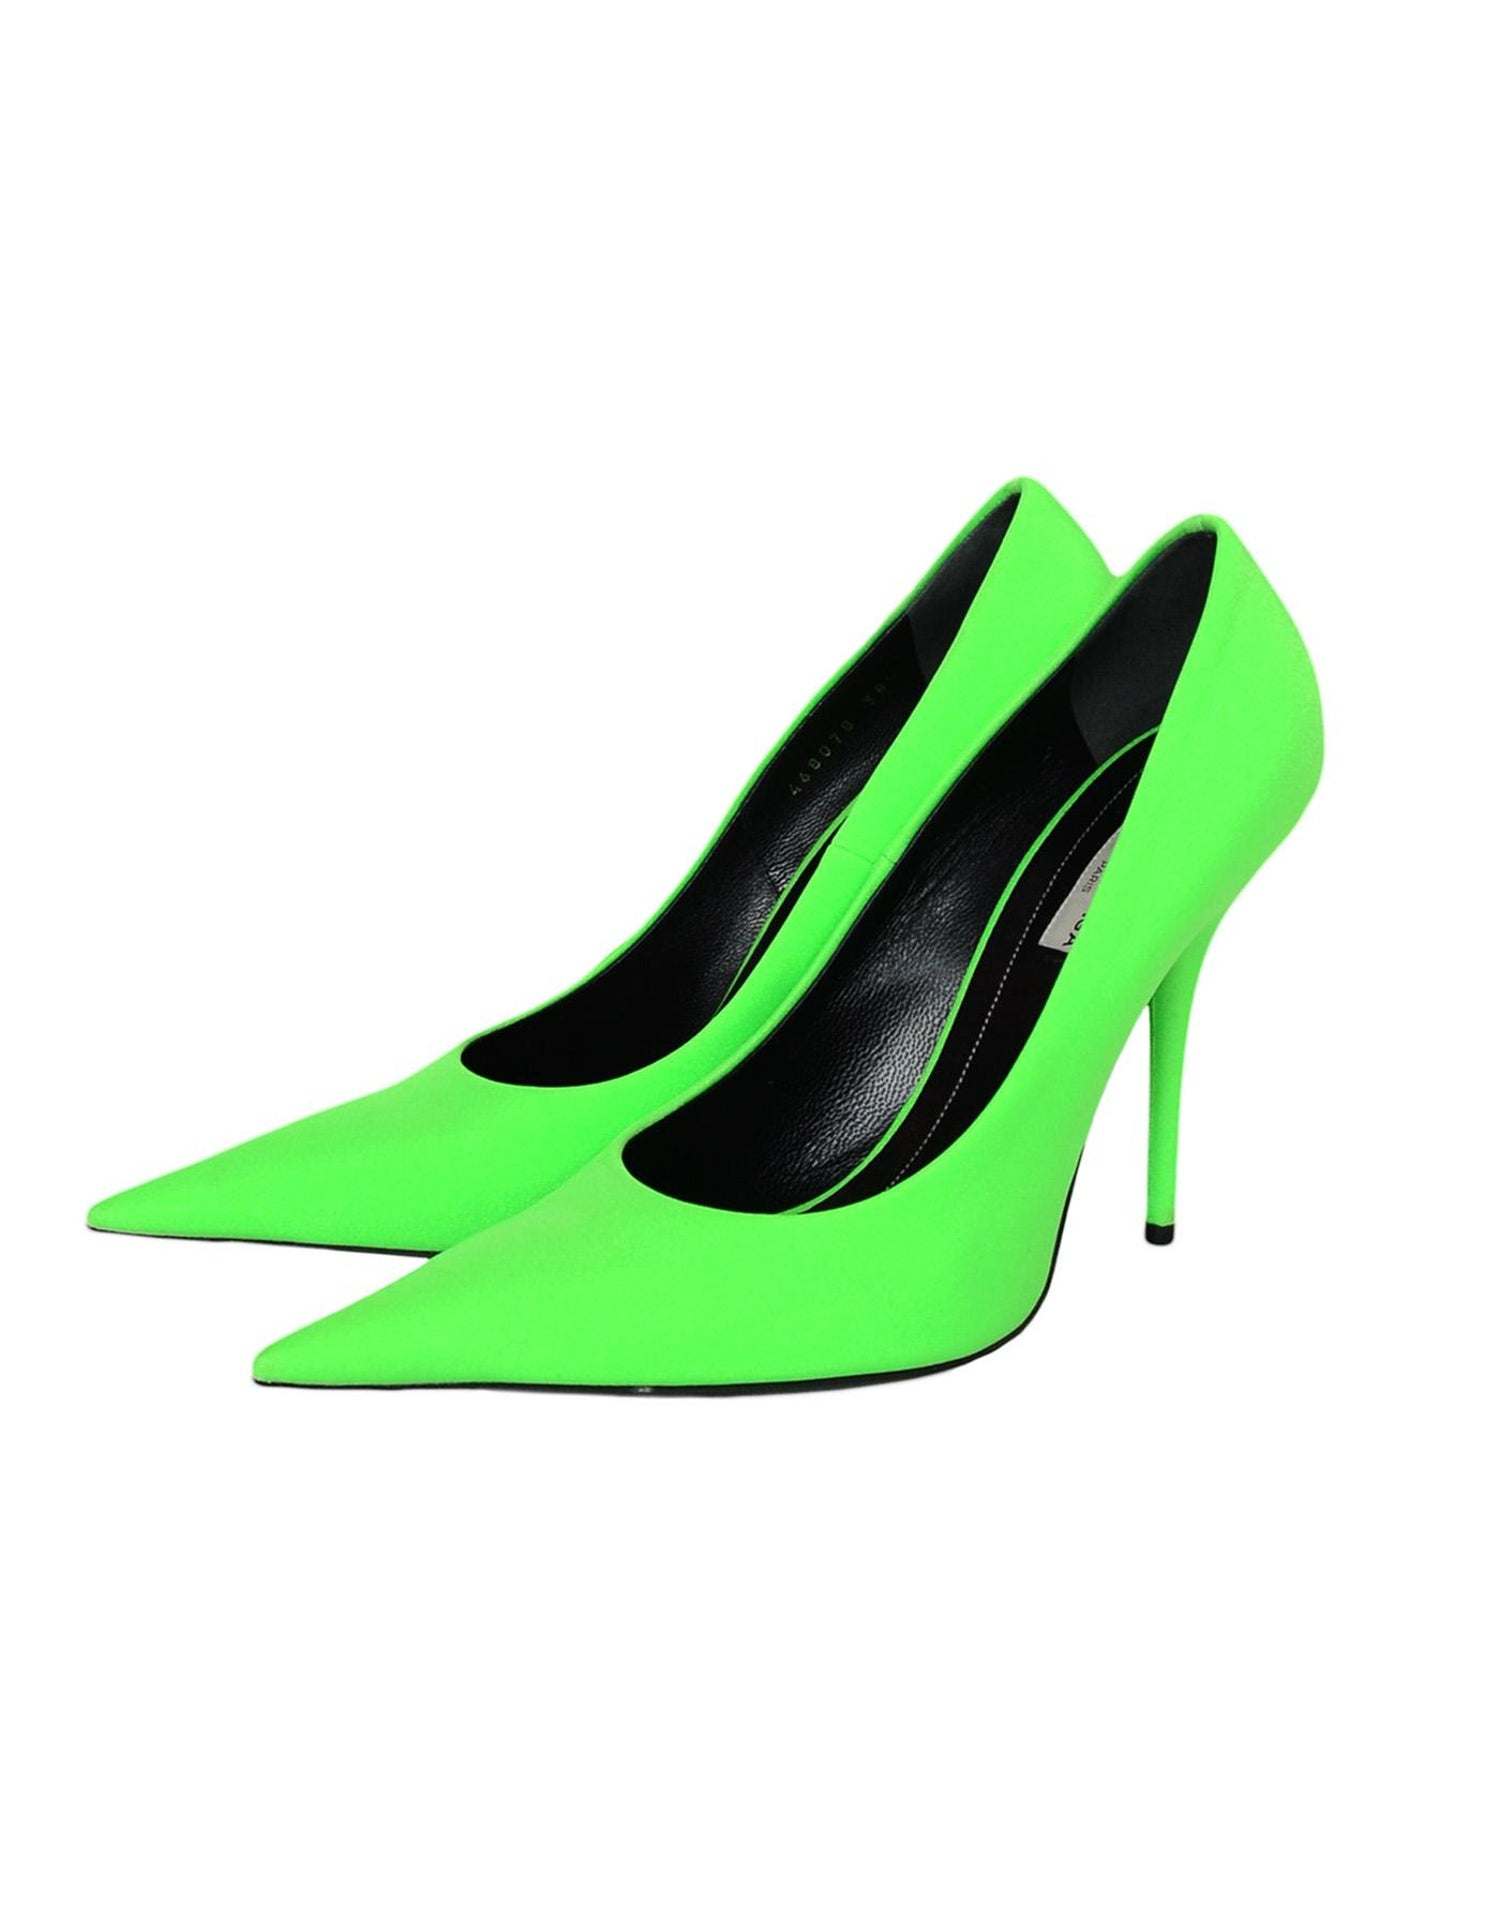 f842b9b5ae07 Balenciaga Neon Green Spandex Extreme Pointed Toe Knife Pumps sz 38.5 rt.   695 For Sale at 1stdibs